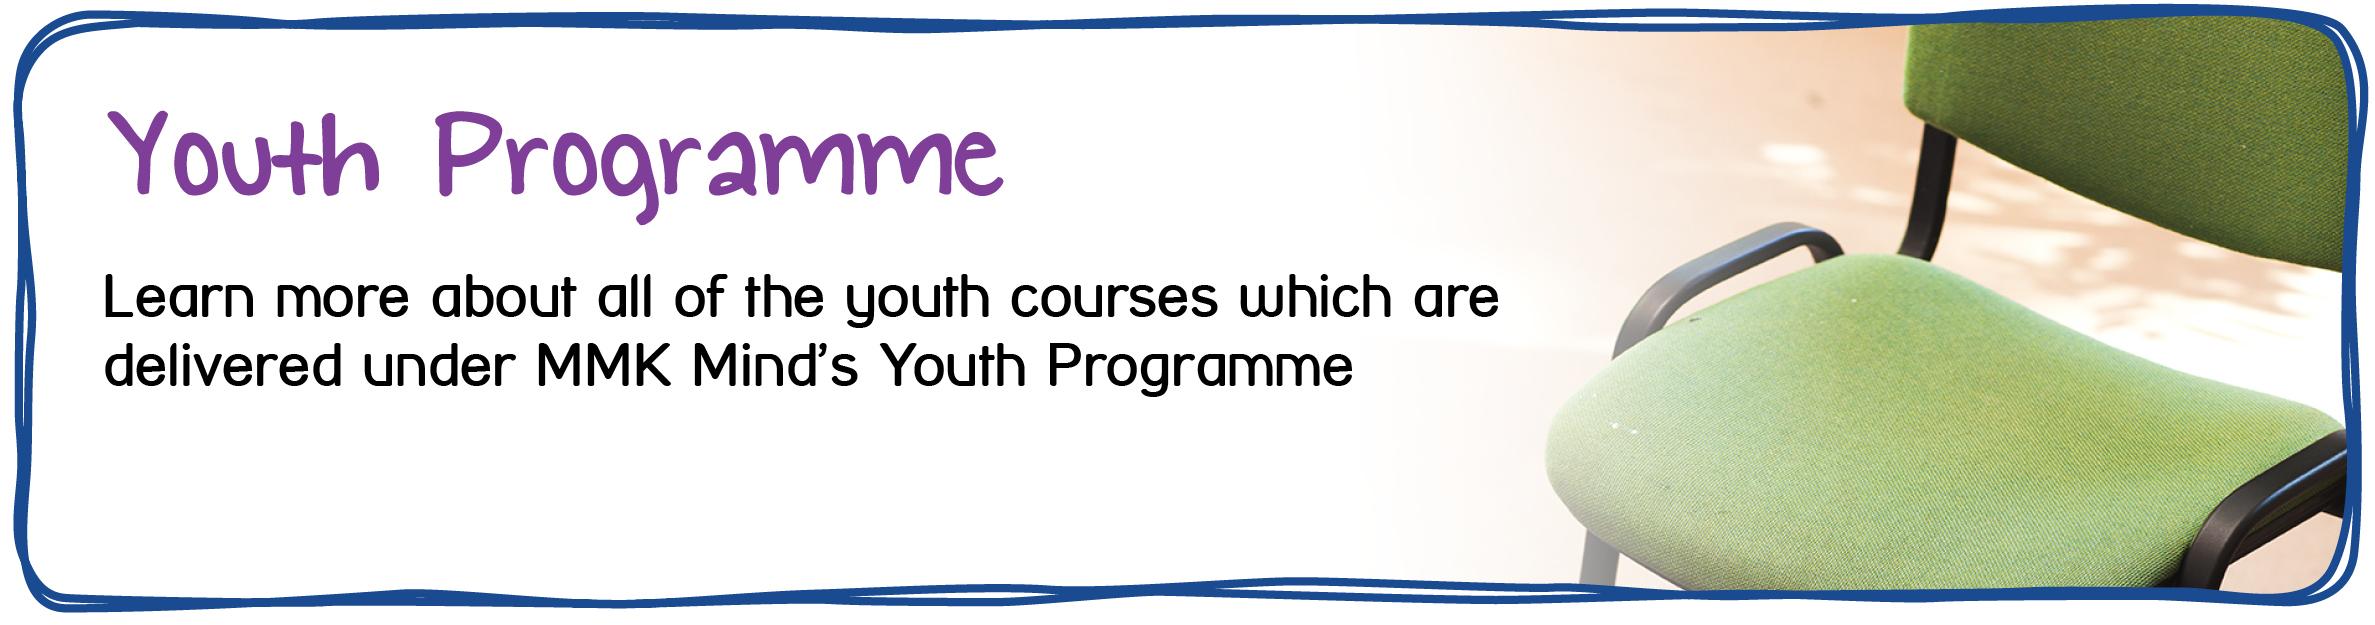 Youth Programme - Learn more about all of the youth courses which are delivered under MMK Mind's Youth Programme.